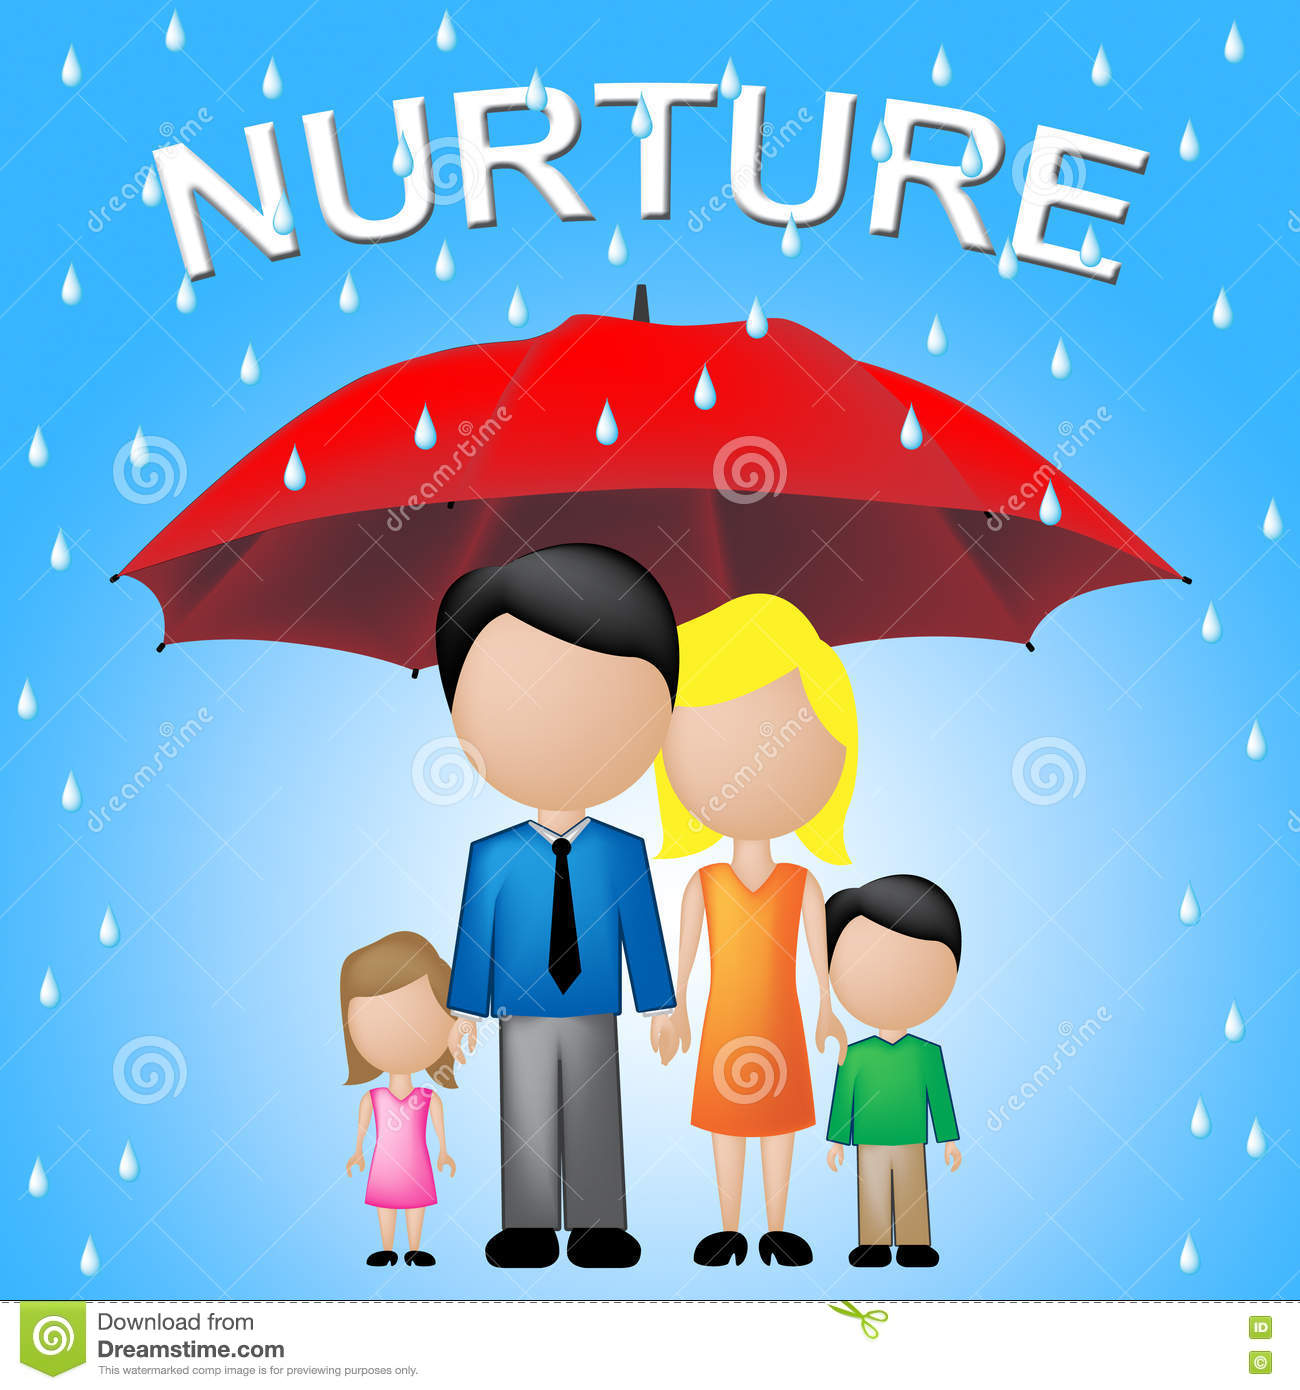 Mentoring cartoons illustrations vector stock images 451 pictures to download from - Nurture images download ...